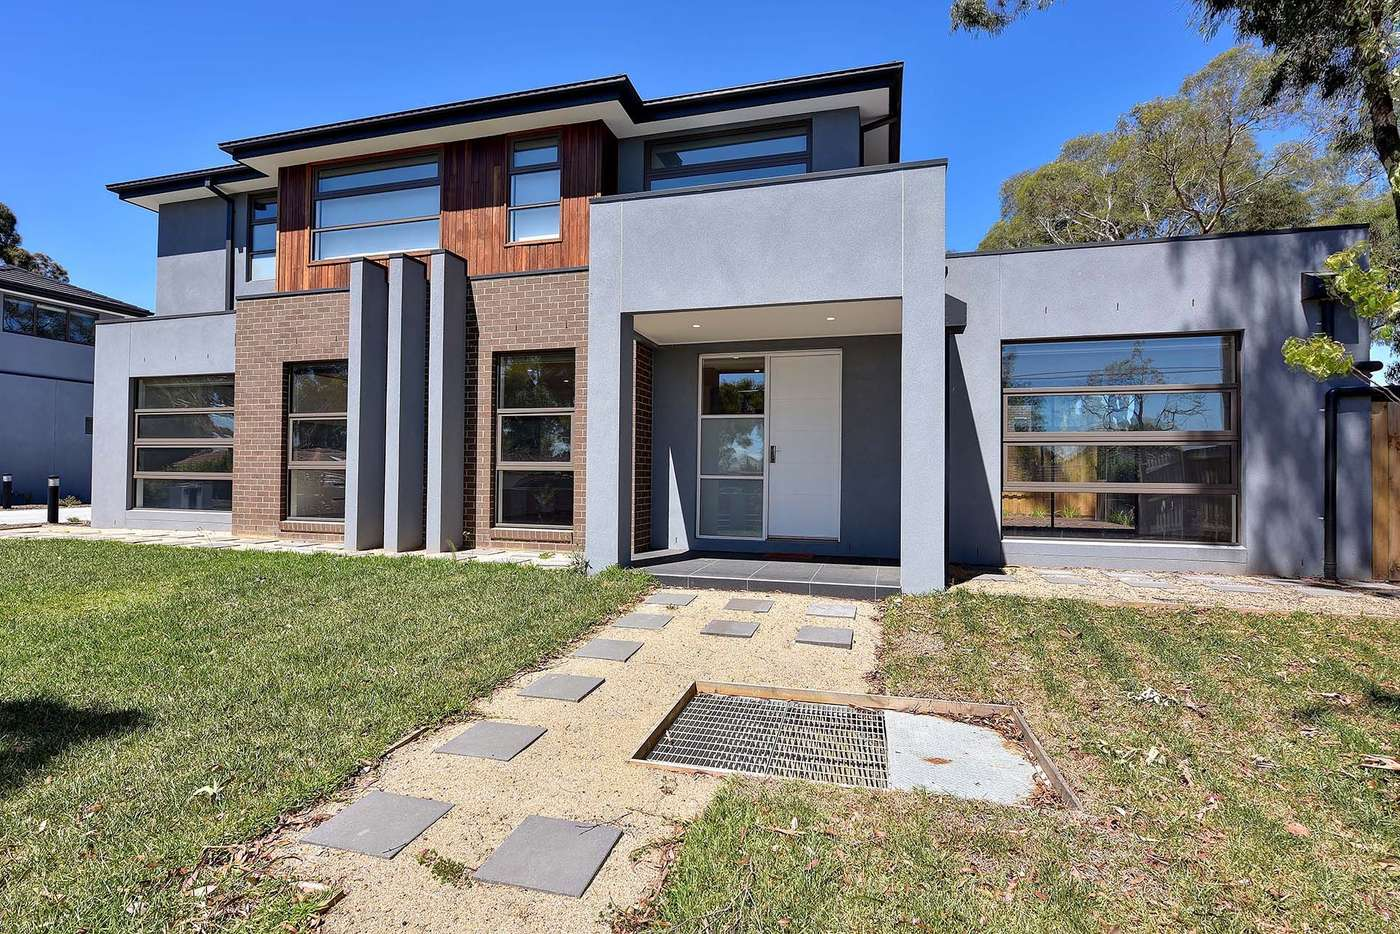 Main view of Homely townhouse listing, 1/31 Livingstone Road, Vermont South VIC 3133